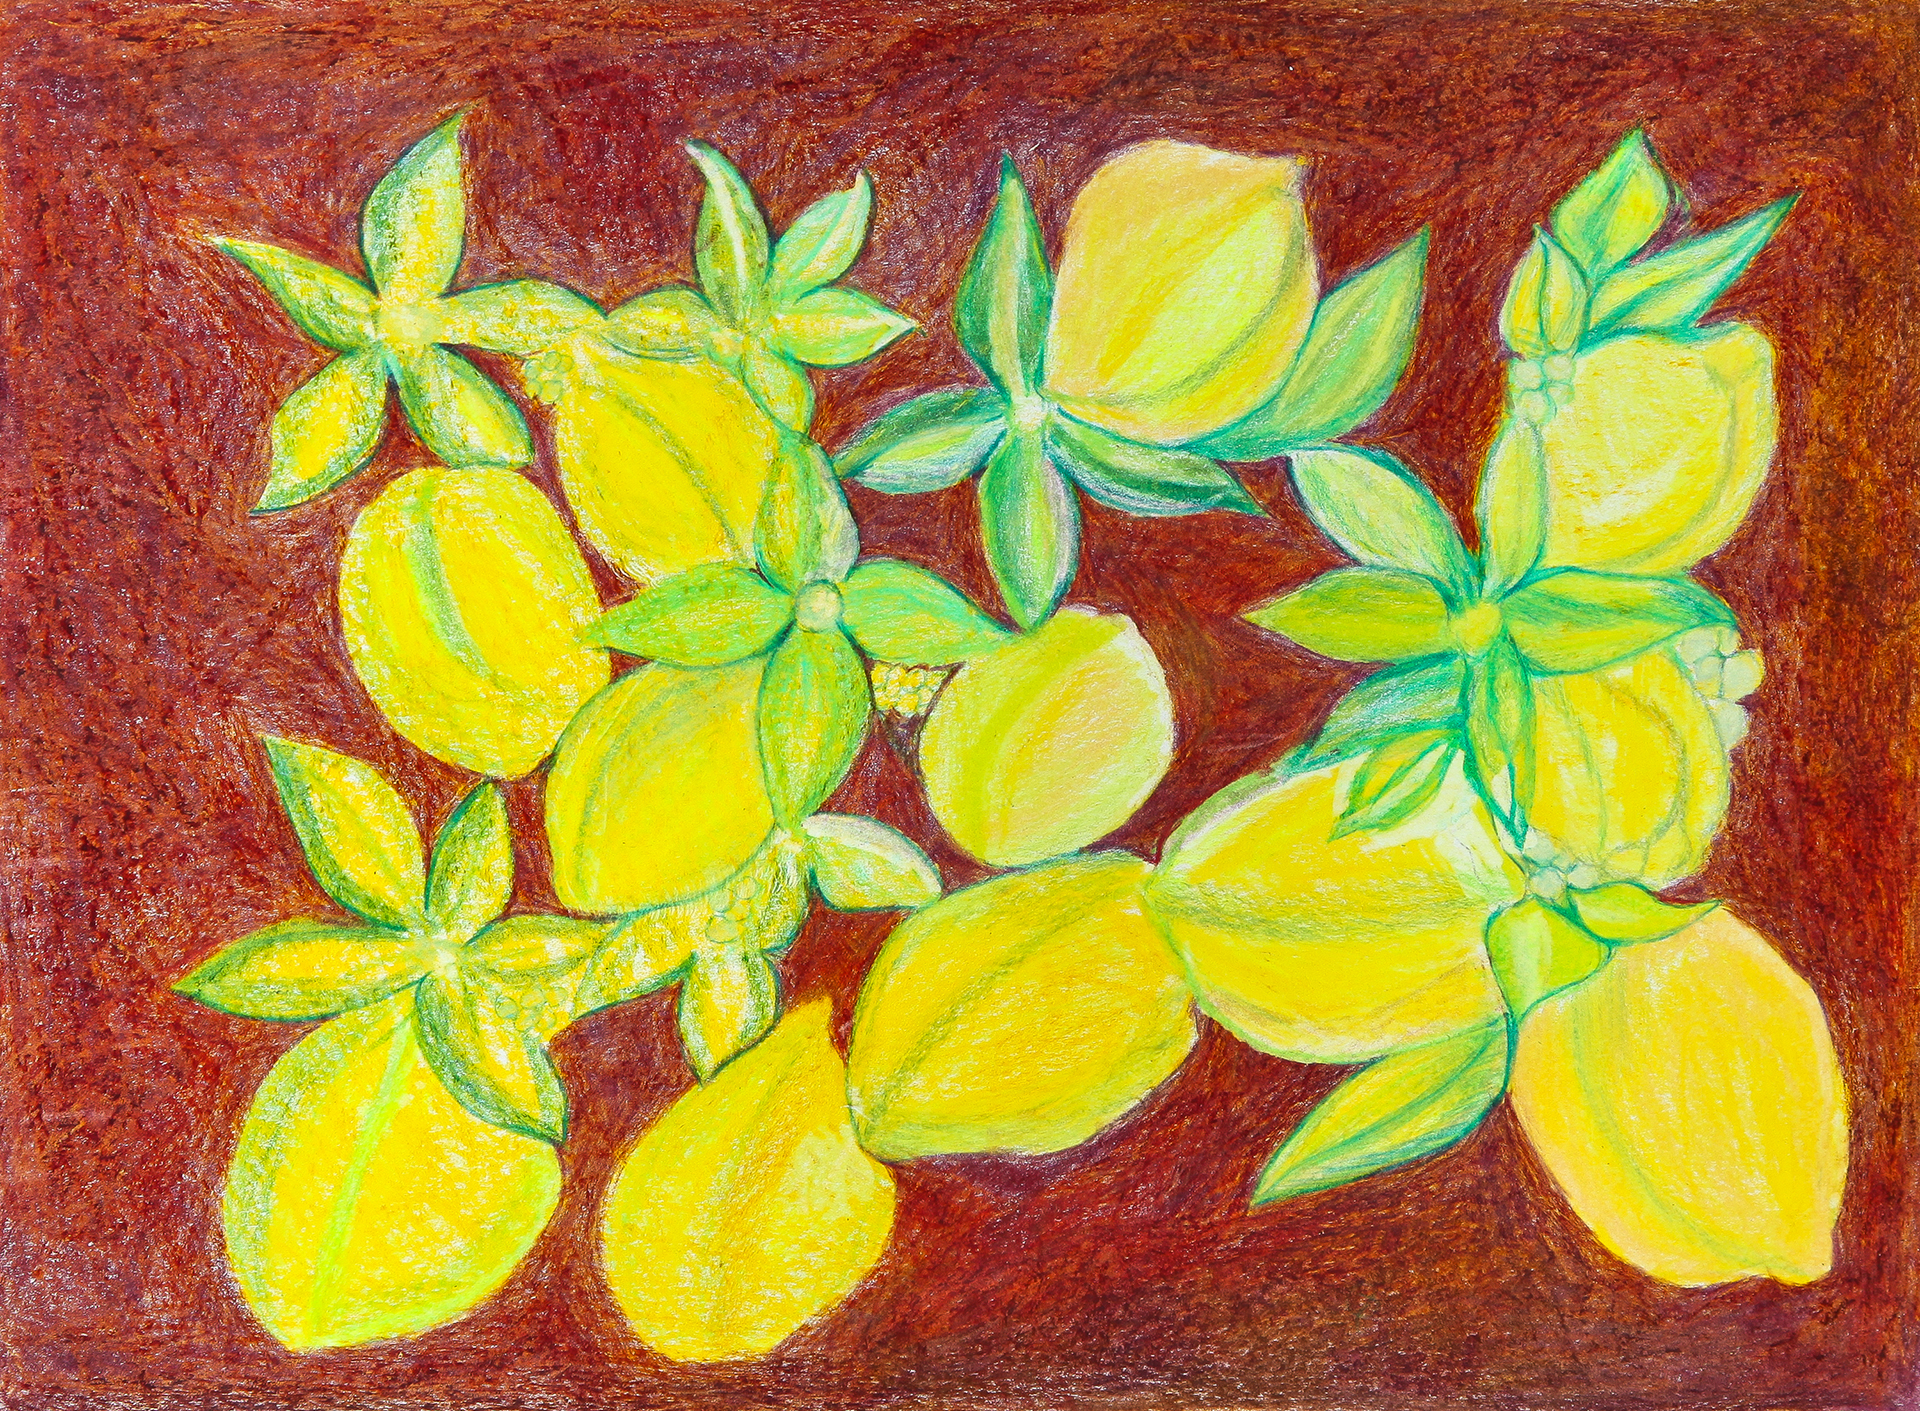 Scattered Lemons by Paulette Lagana